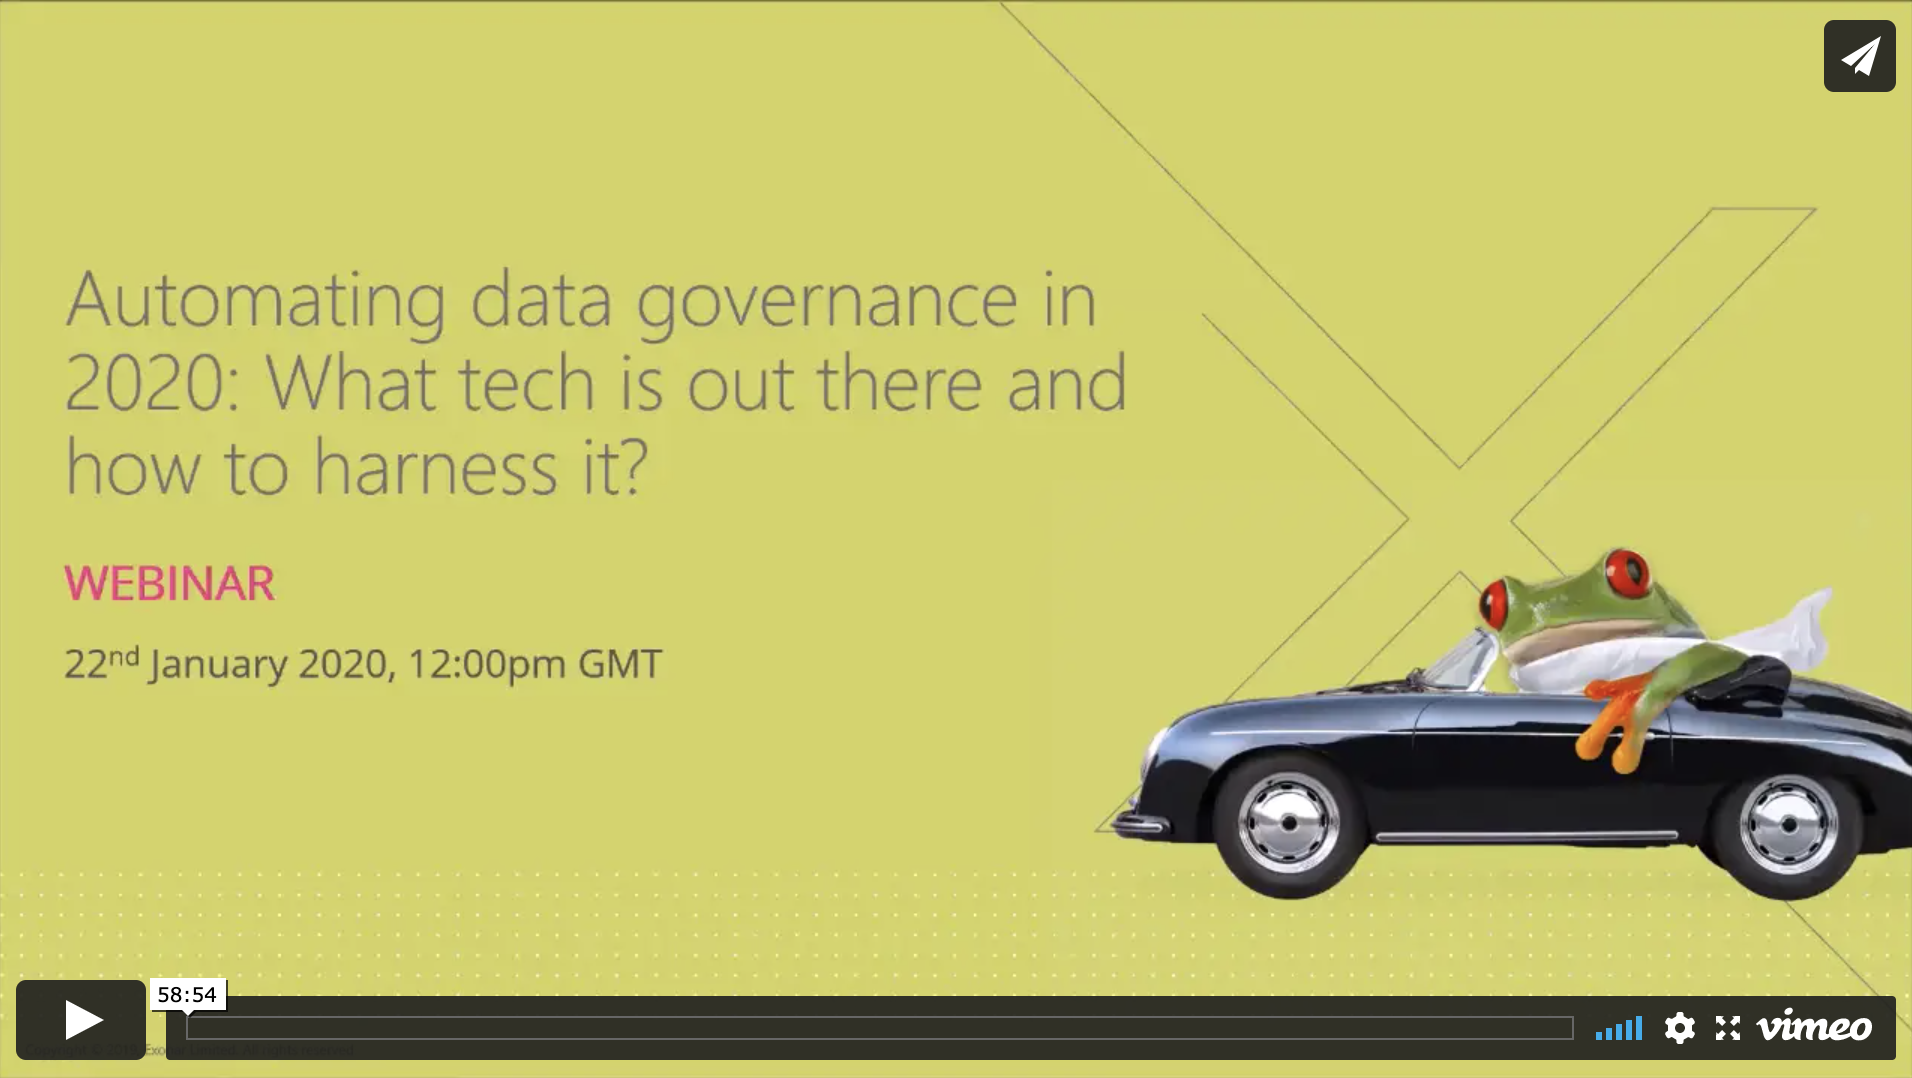 Automating data governance in 2020 what tech is out there?